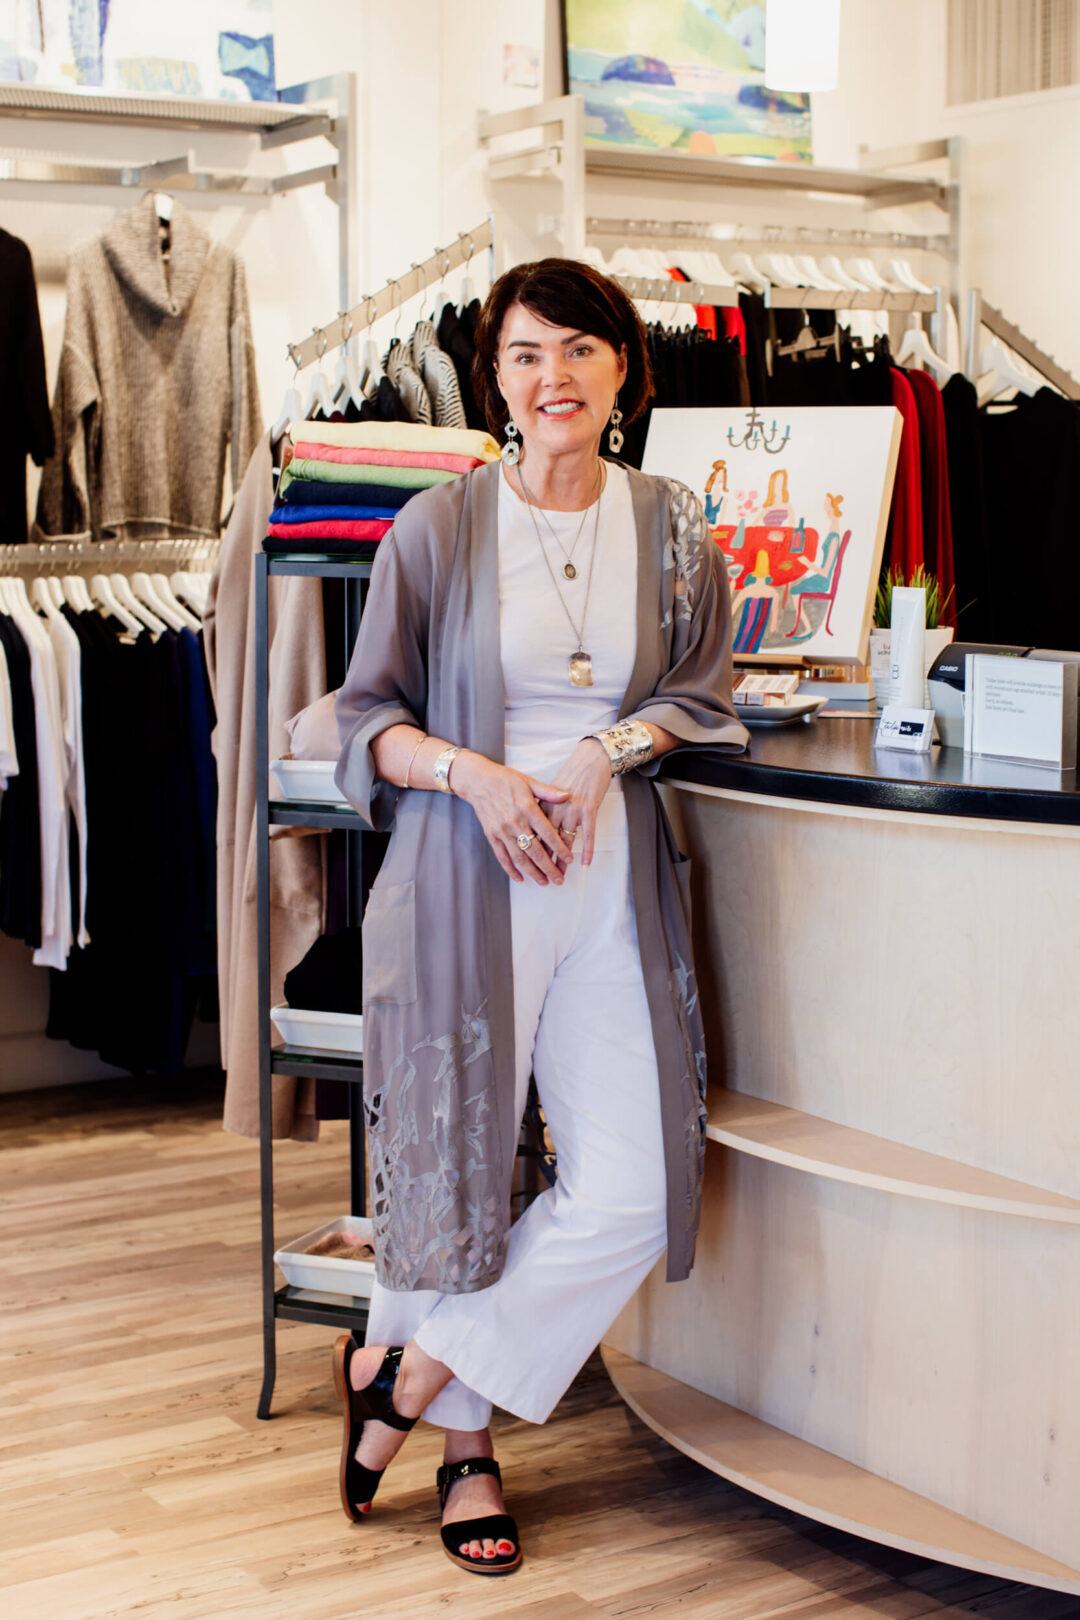 The owner of Tulipe Noire, a clothing store in Victoria, BC, stands inside her shop.